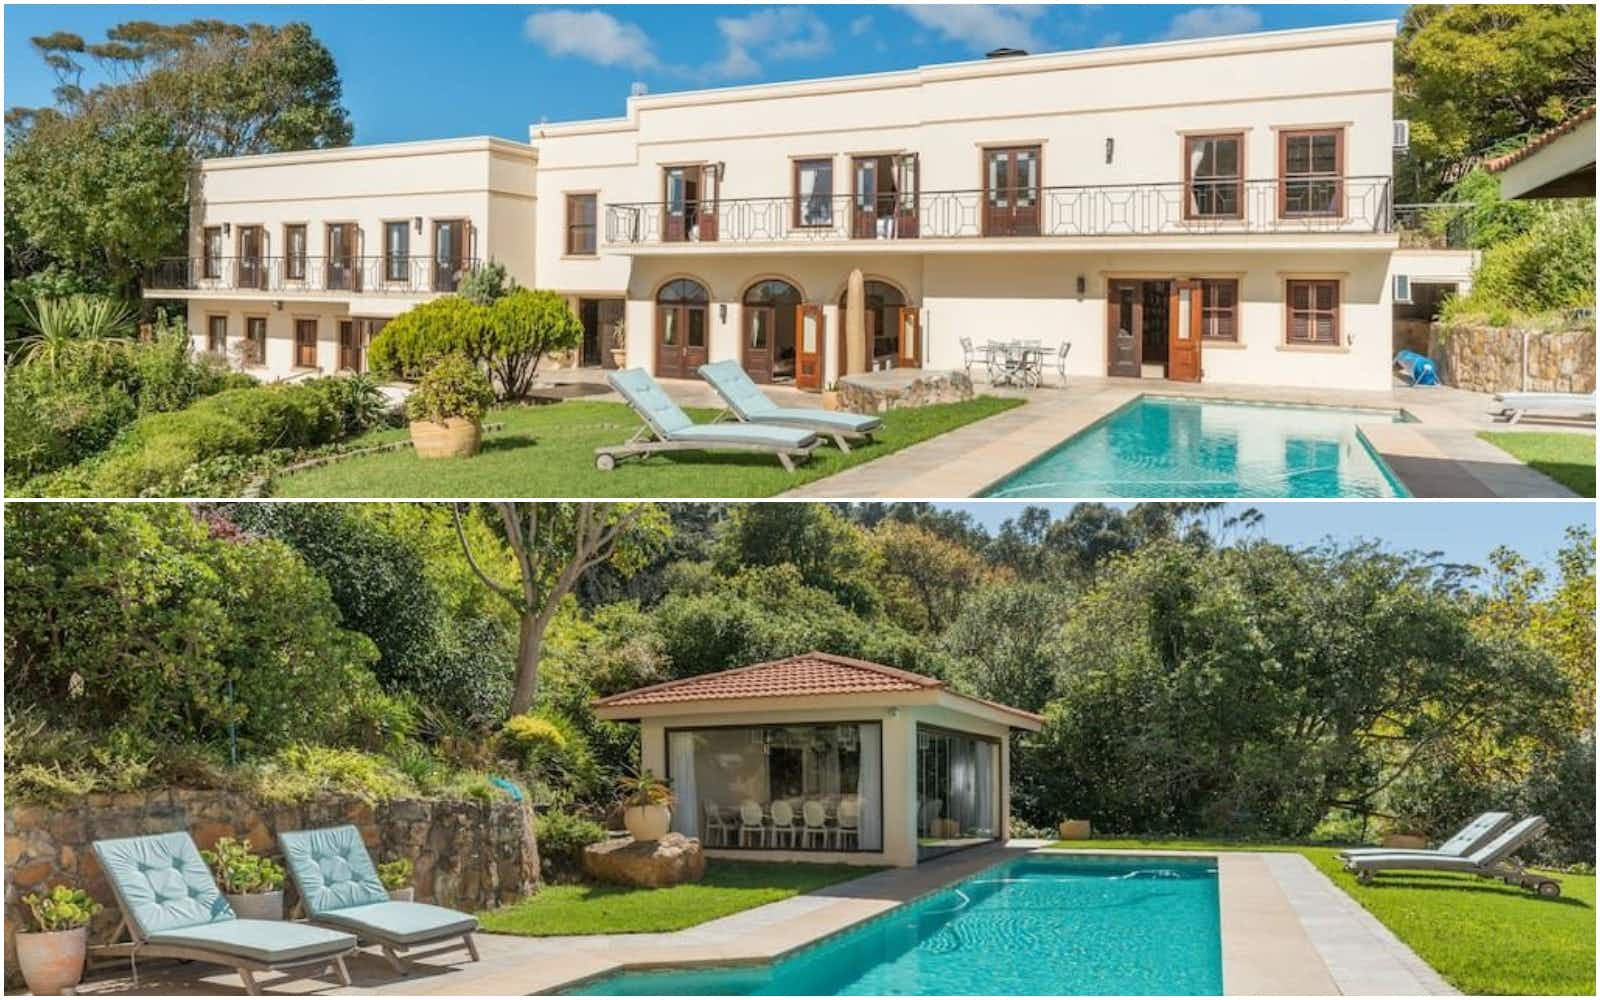 Live like you're on Love Island in these Cape Town villas